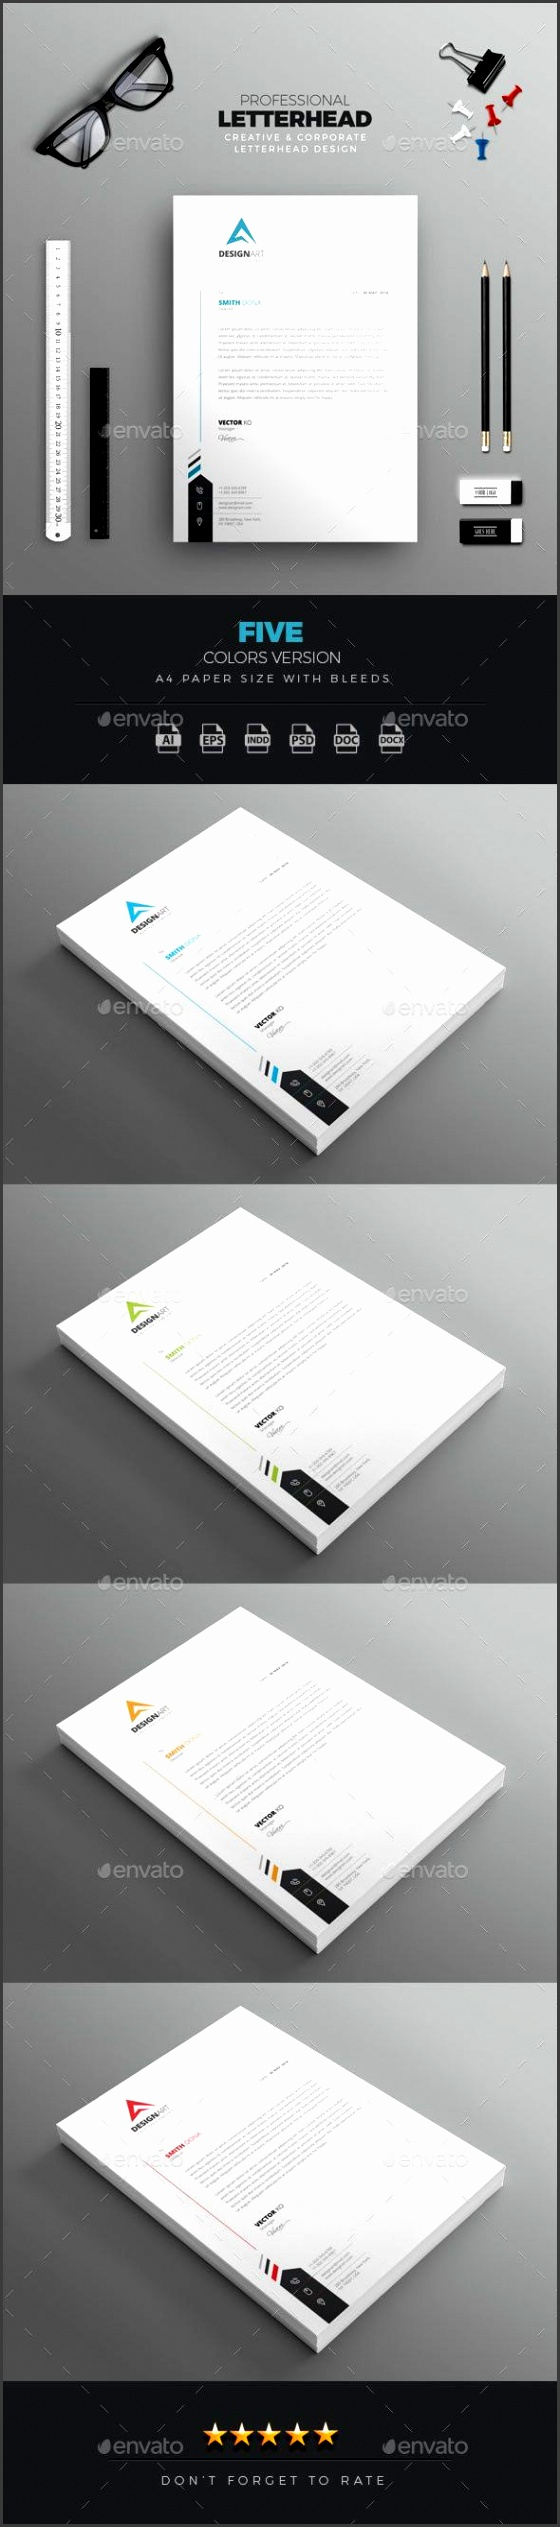 professional letterhead stationery print templateswnload here graphicriver